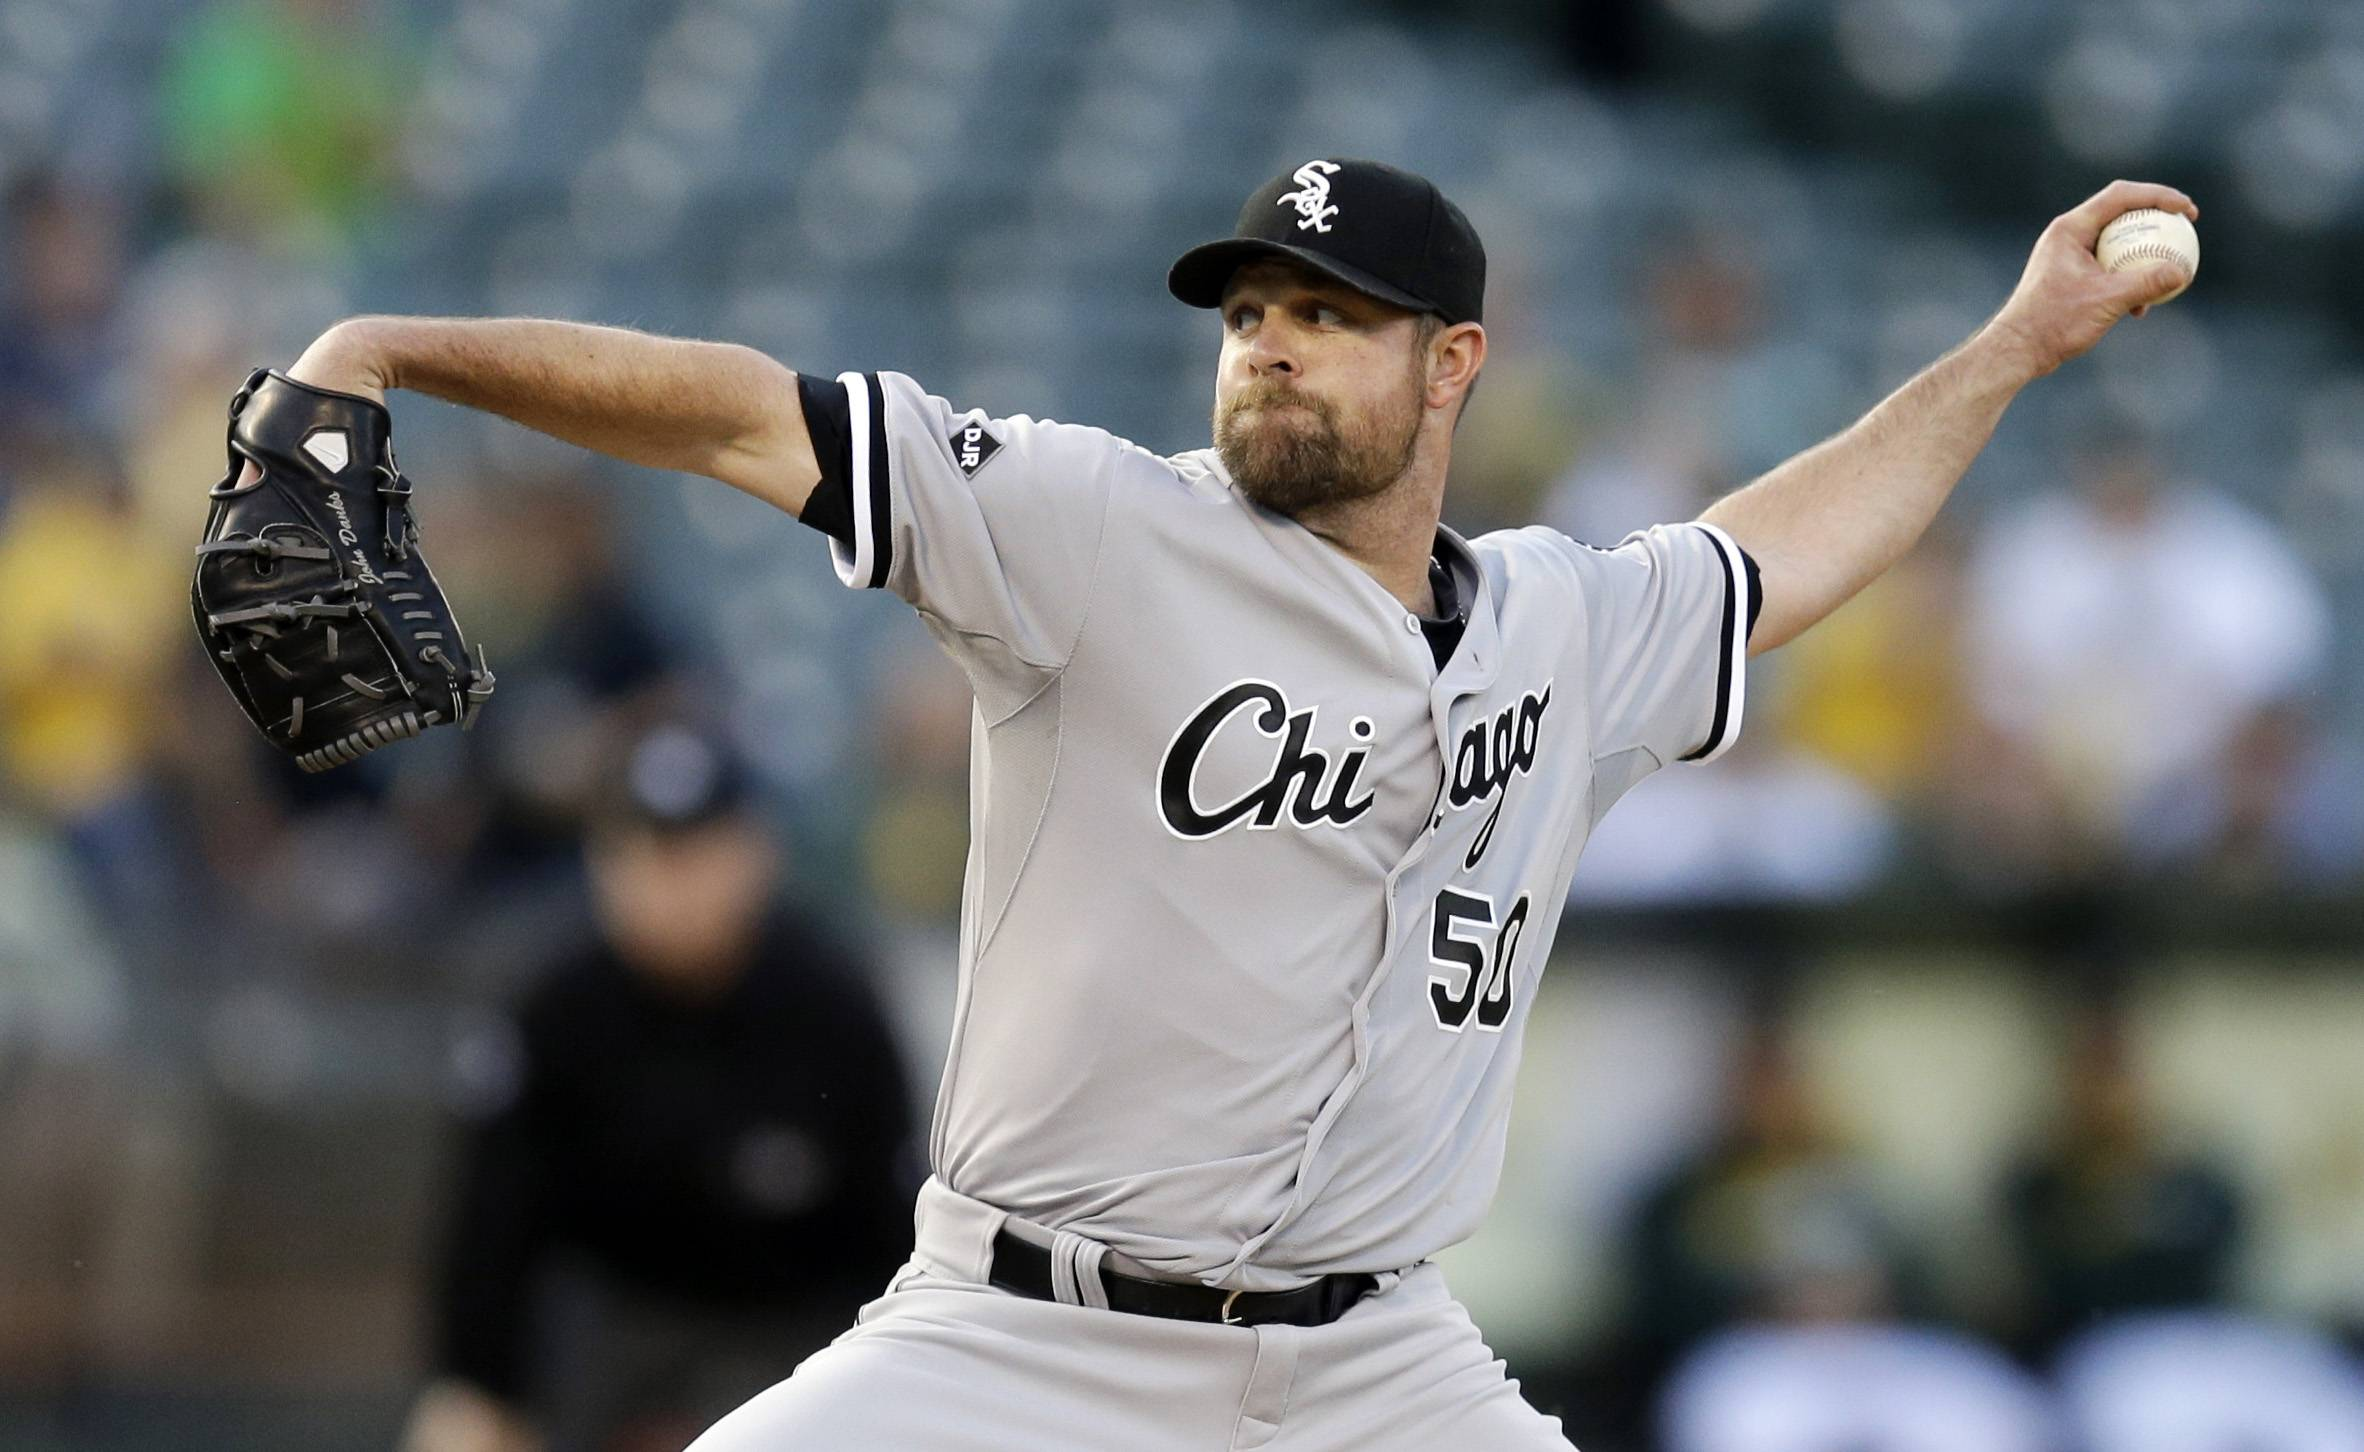 White Sox starter John Danks works against the Athletics in the first inning Monday night in Oakland.